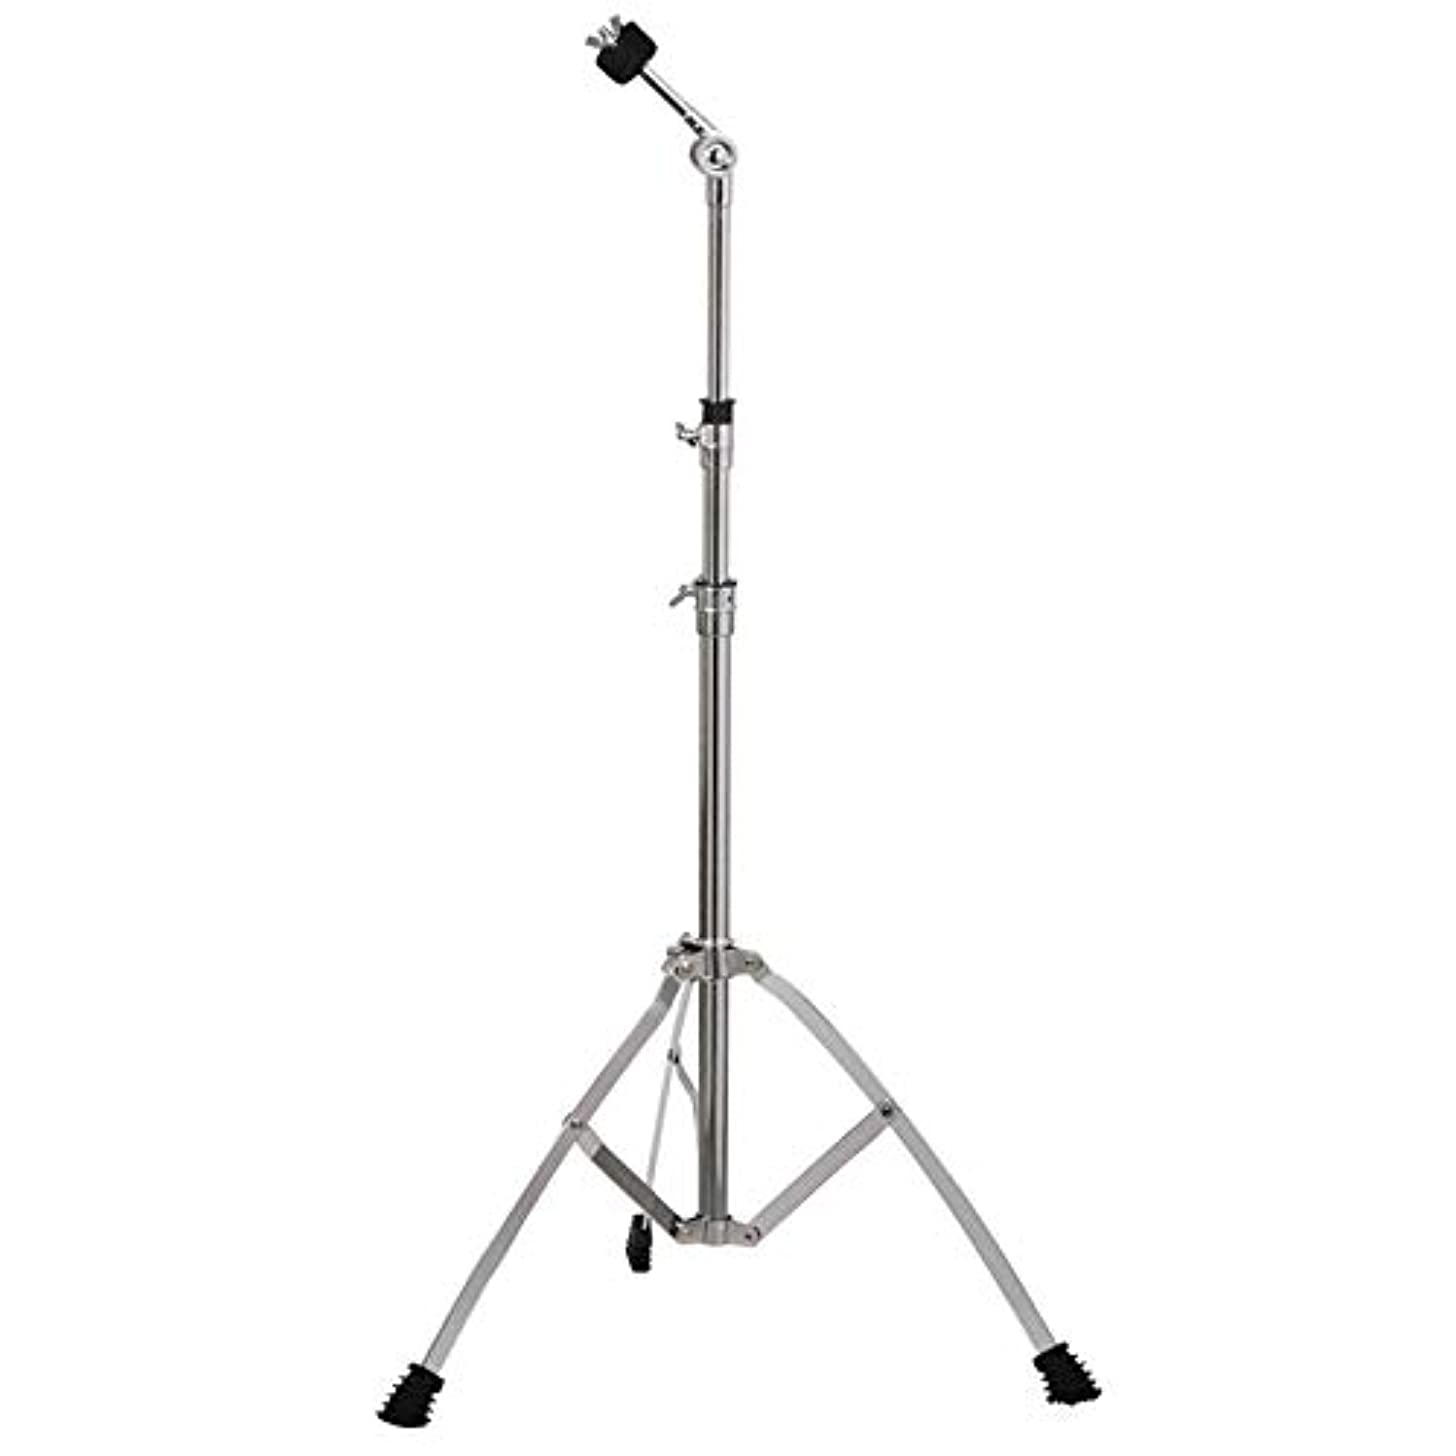 TOOGOO Drum Stand Snare Dumb Holder Cymbal Triangle-bracket Support all of size Cymbal for Drum t Percussion